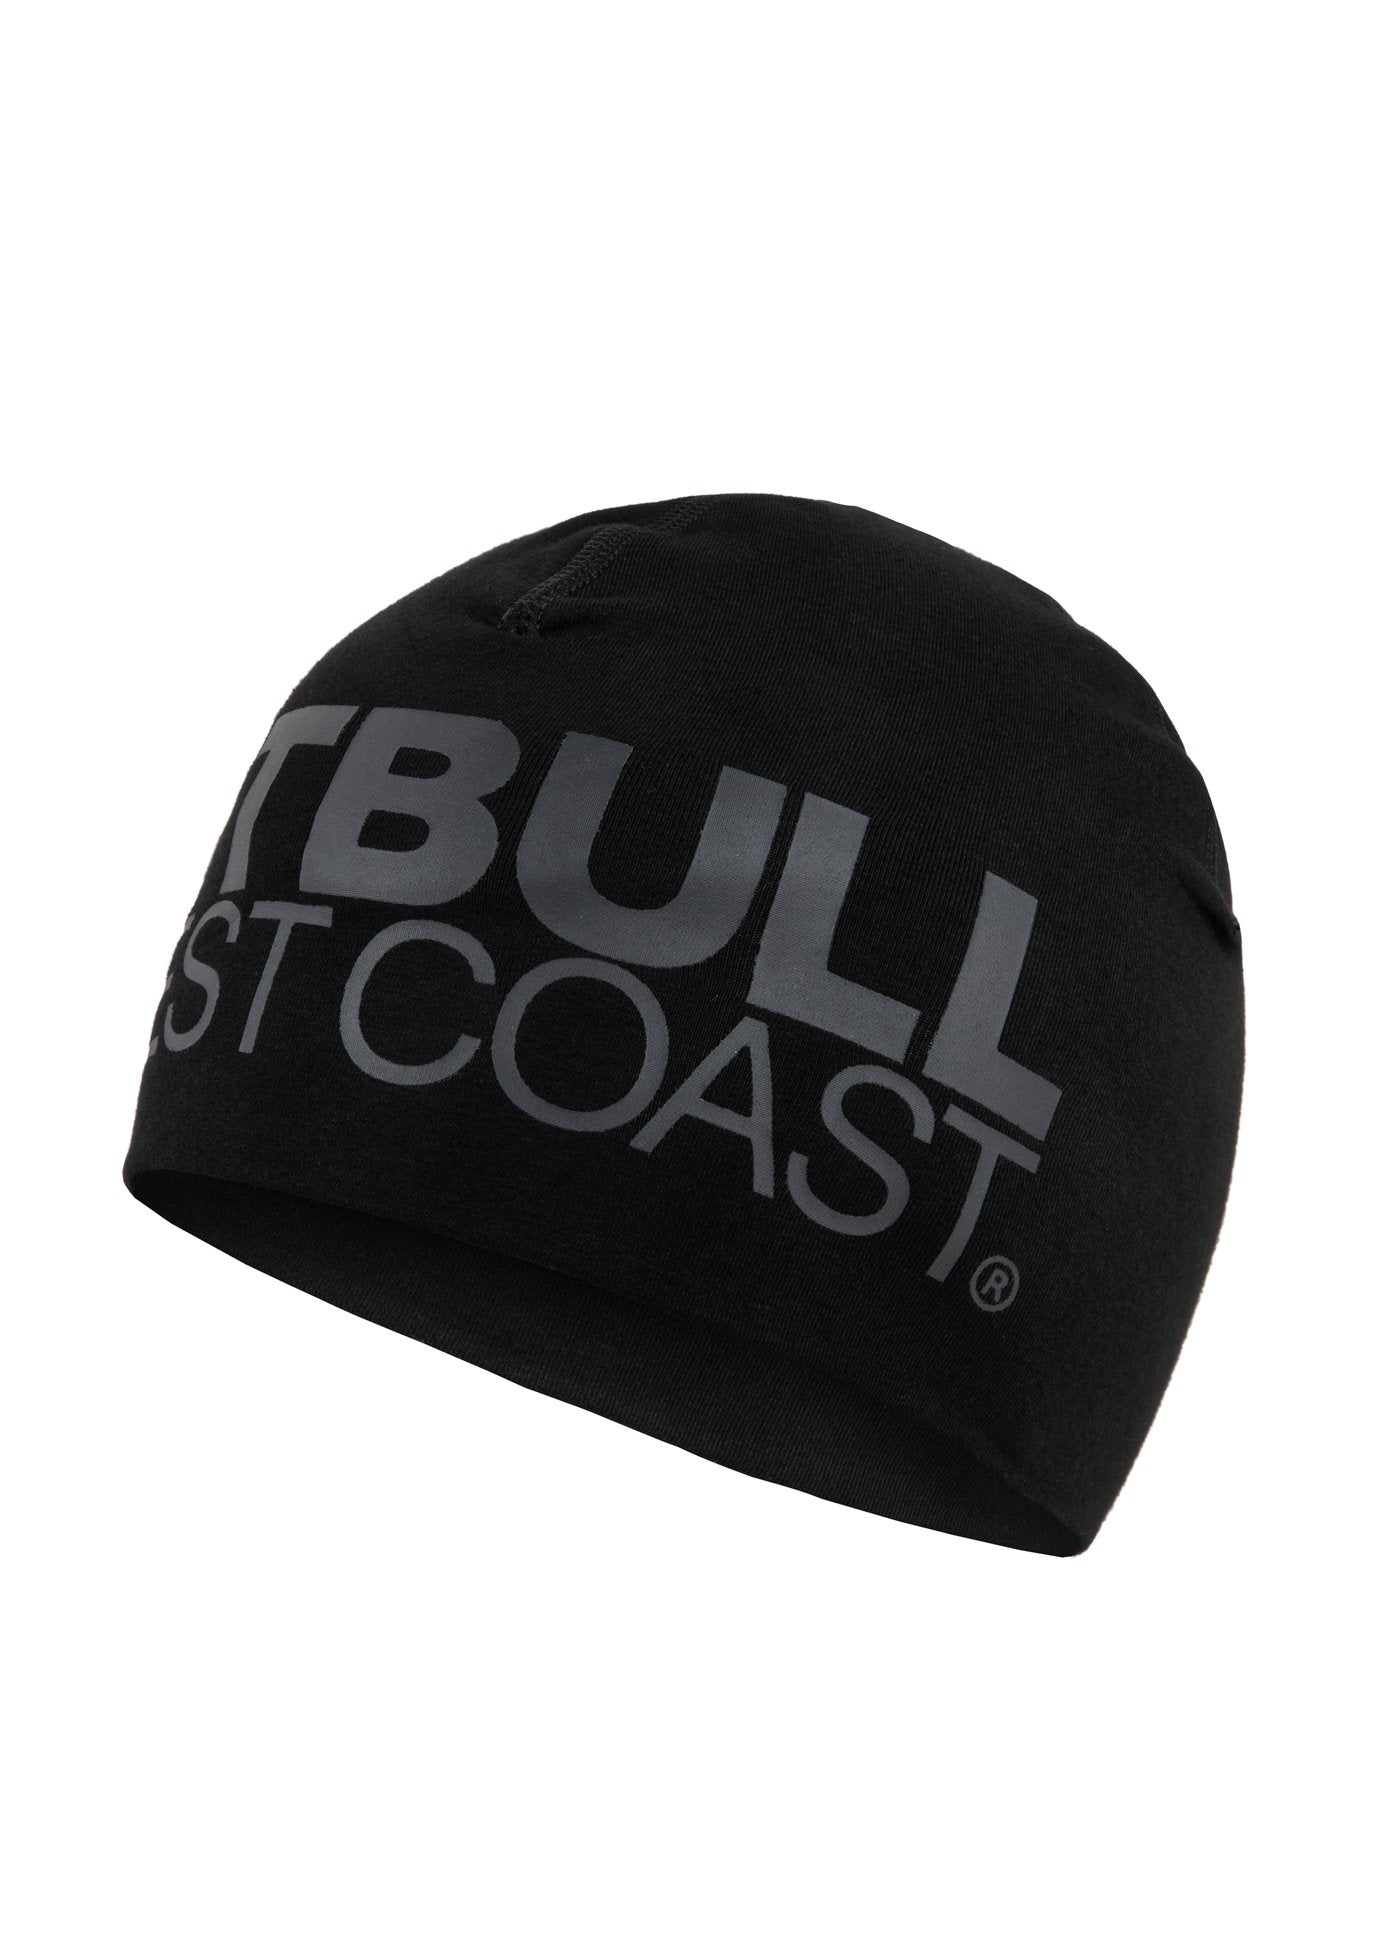 TNM COMPRESSION BEANIE BLACK - pitbullwestcoast